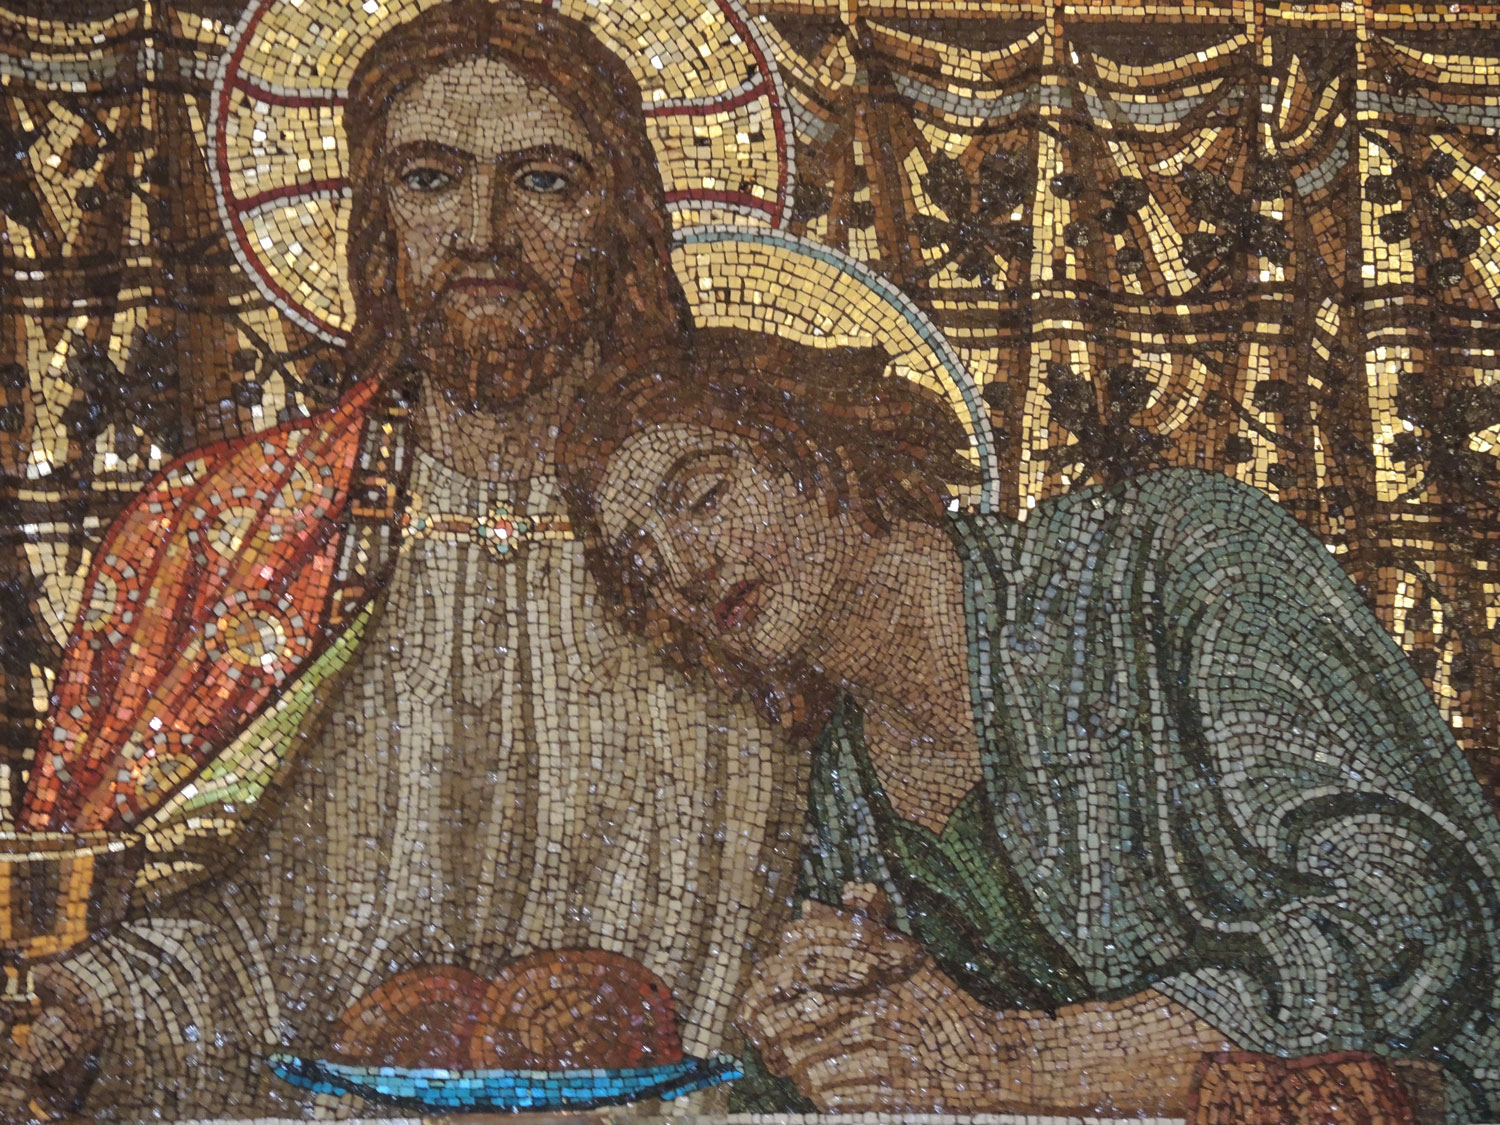 Henry Holiday, Last Supper mosaic